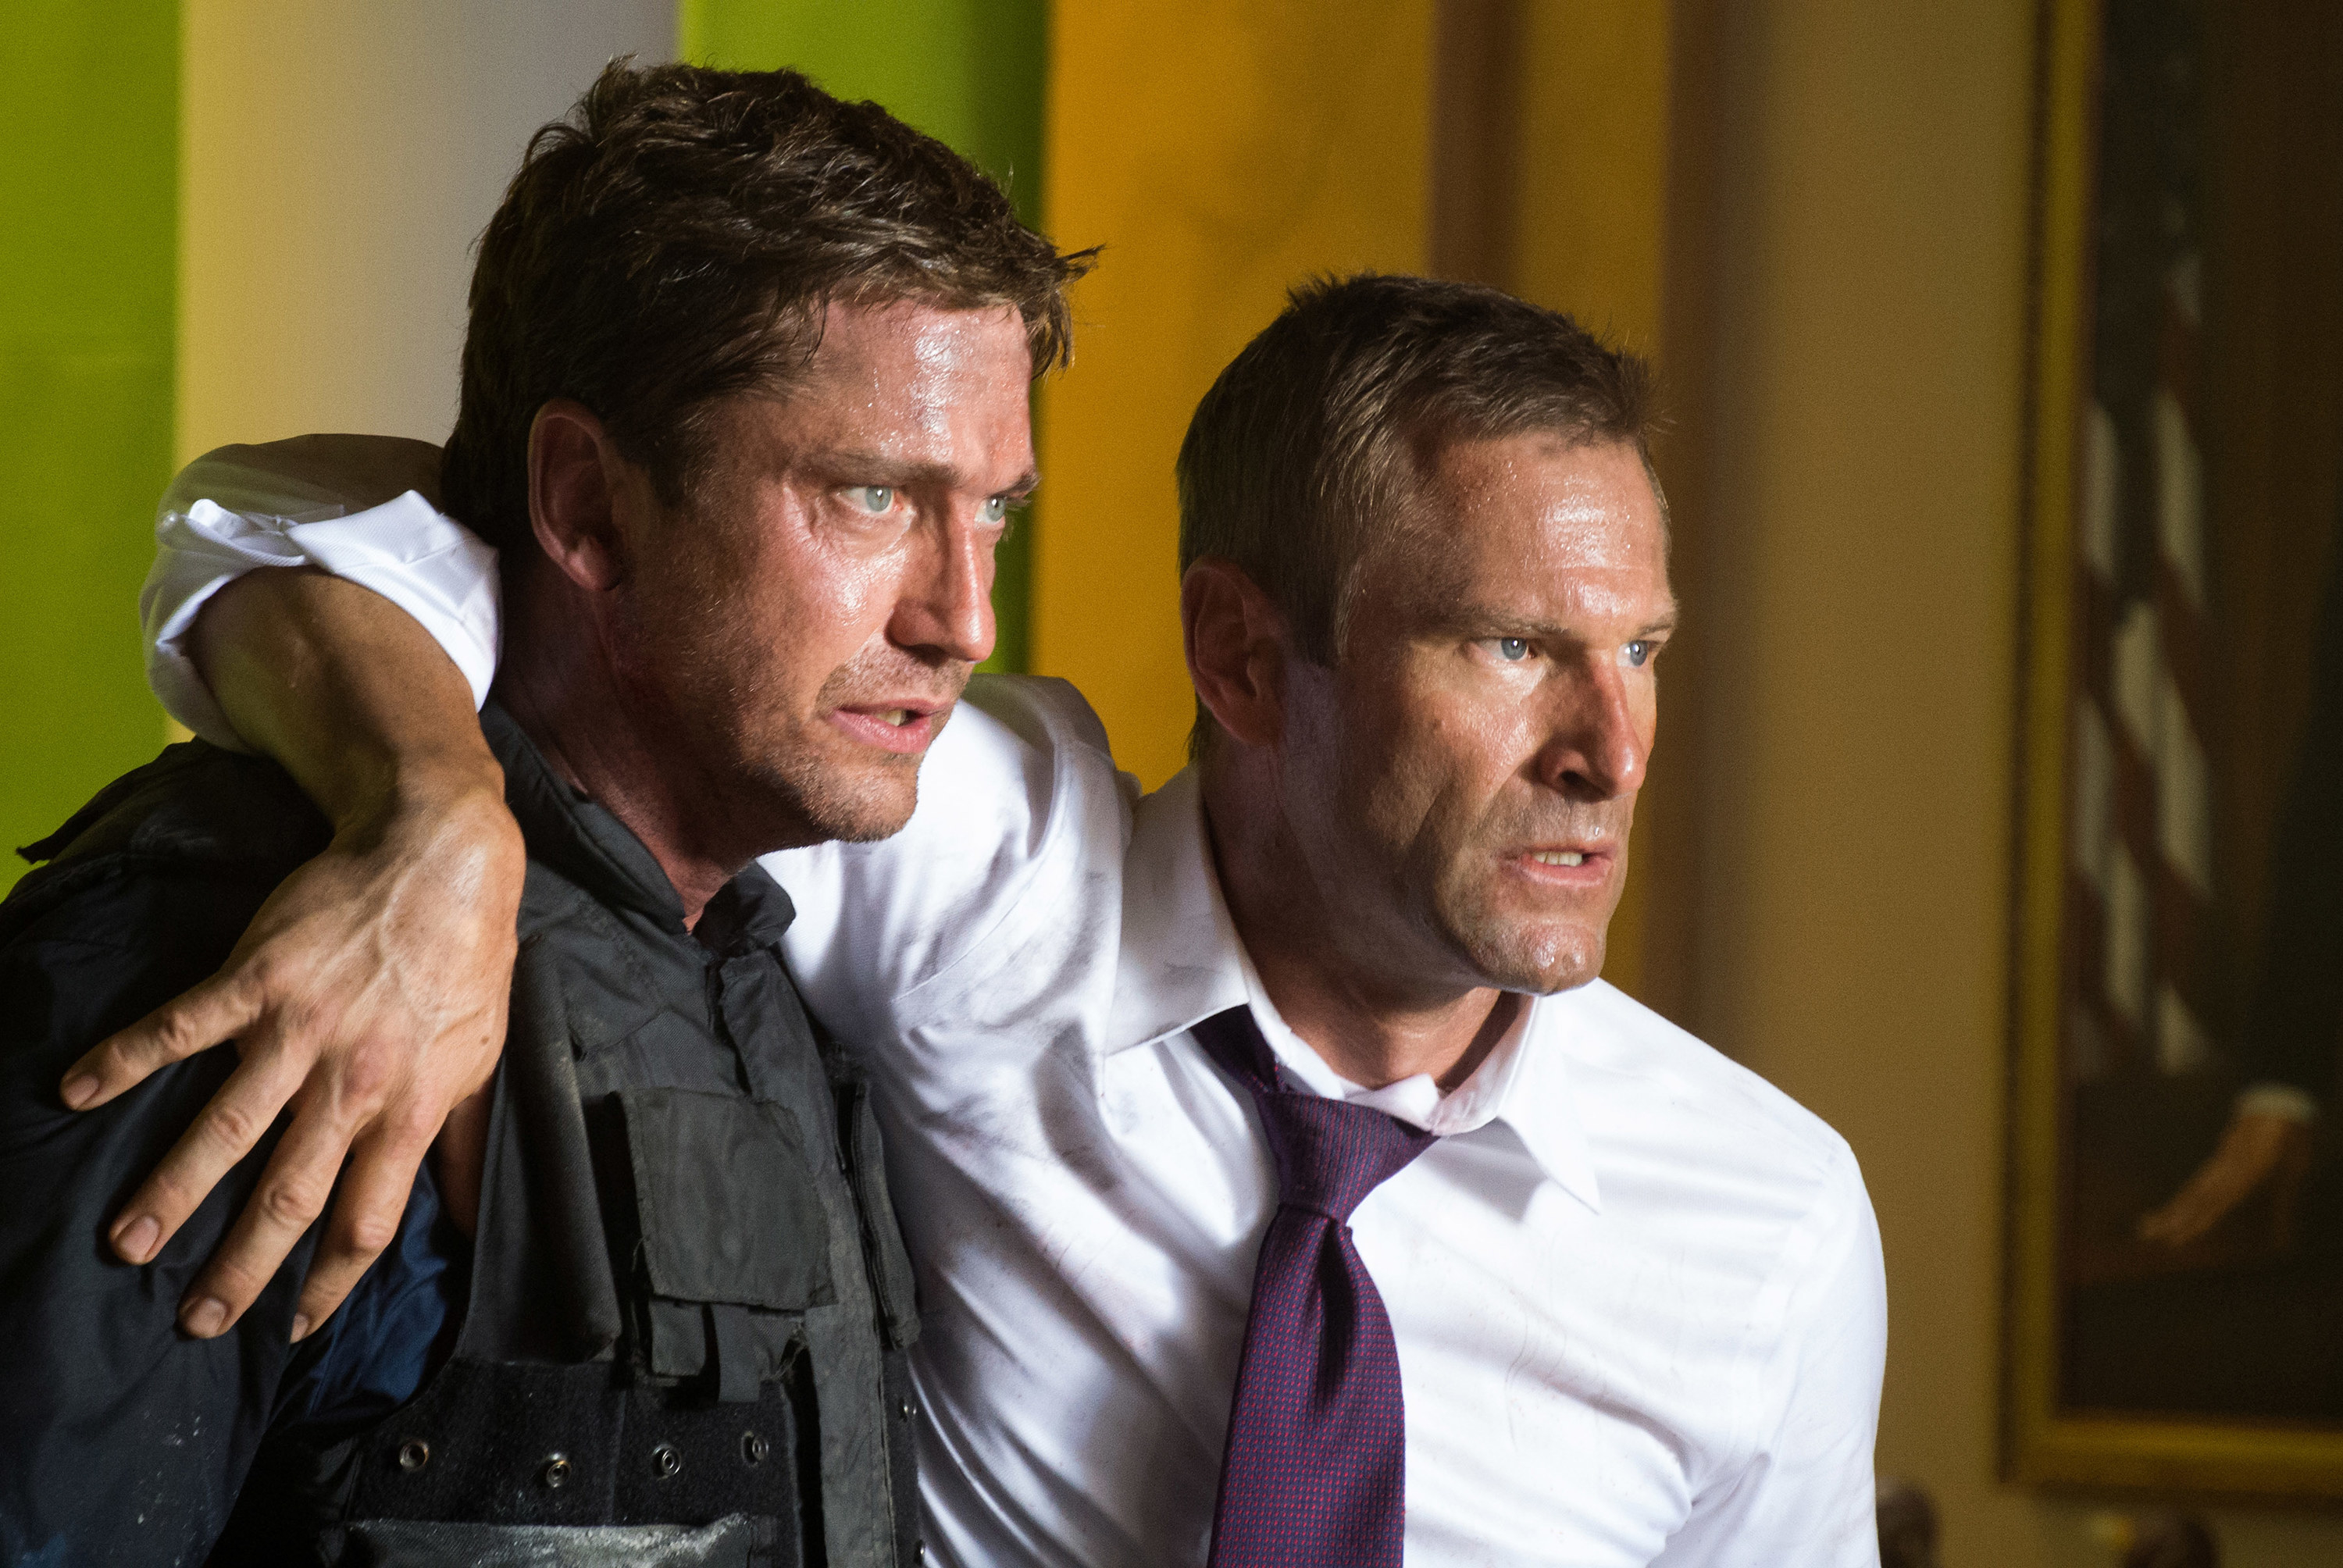 from left Gerard Butler holding Aaron Eckhart while escaping the white house